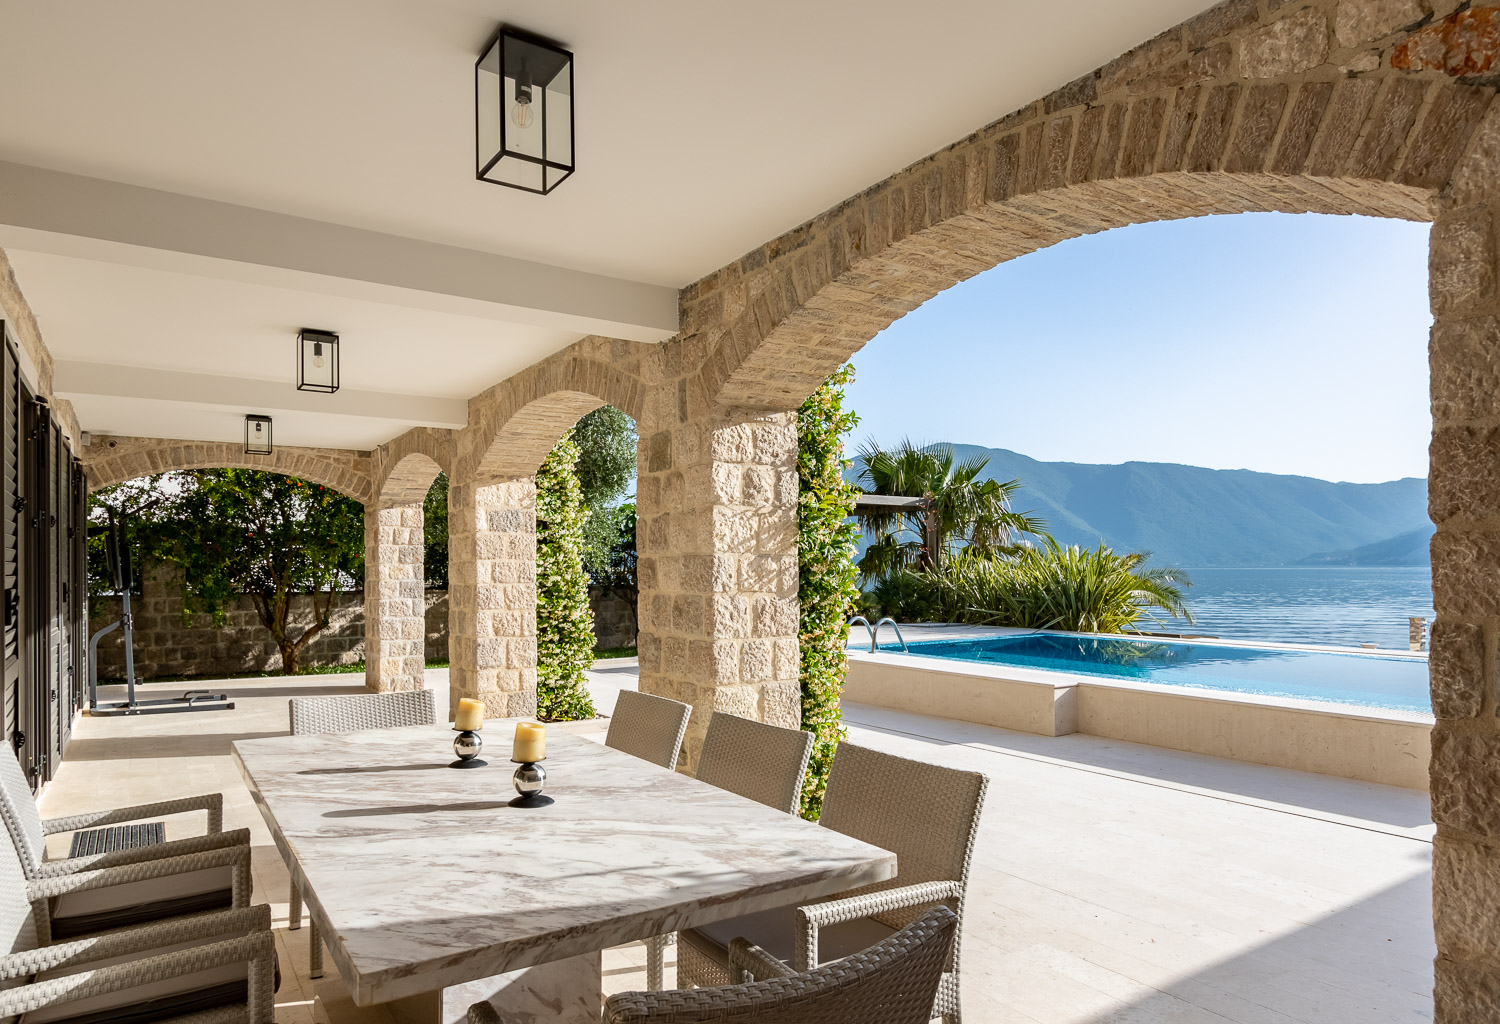 waterfront-house-with-covered-terrace-risan-Bay-Of-Kotor-Montenegro.JPG